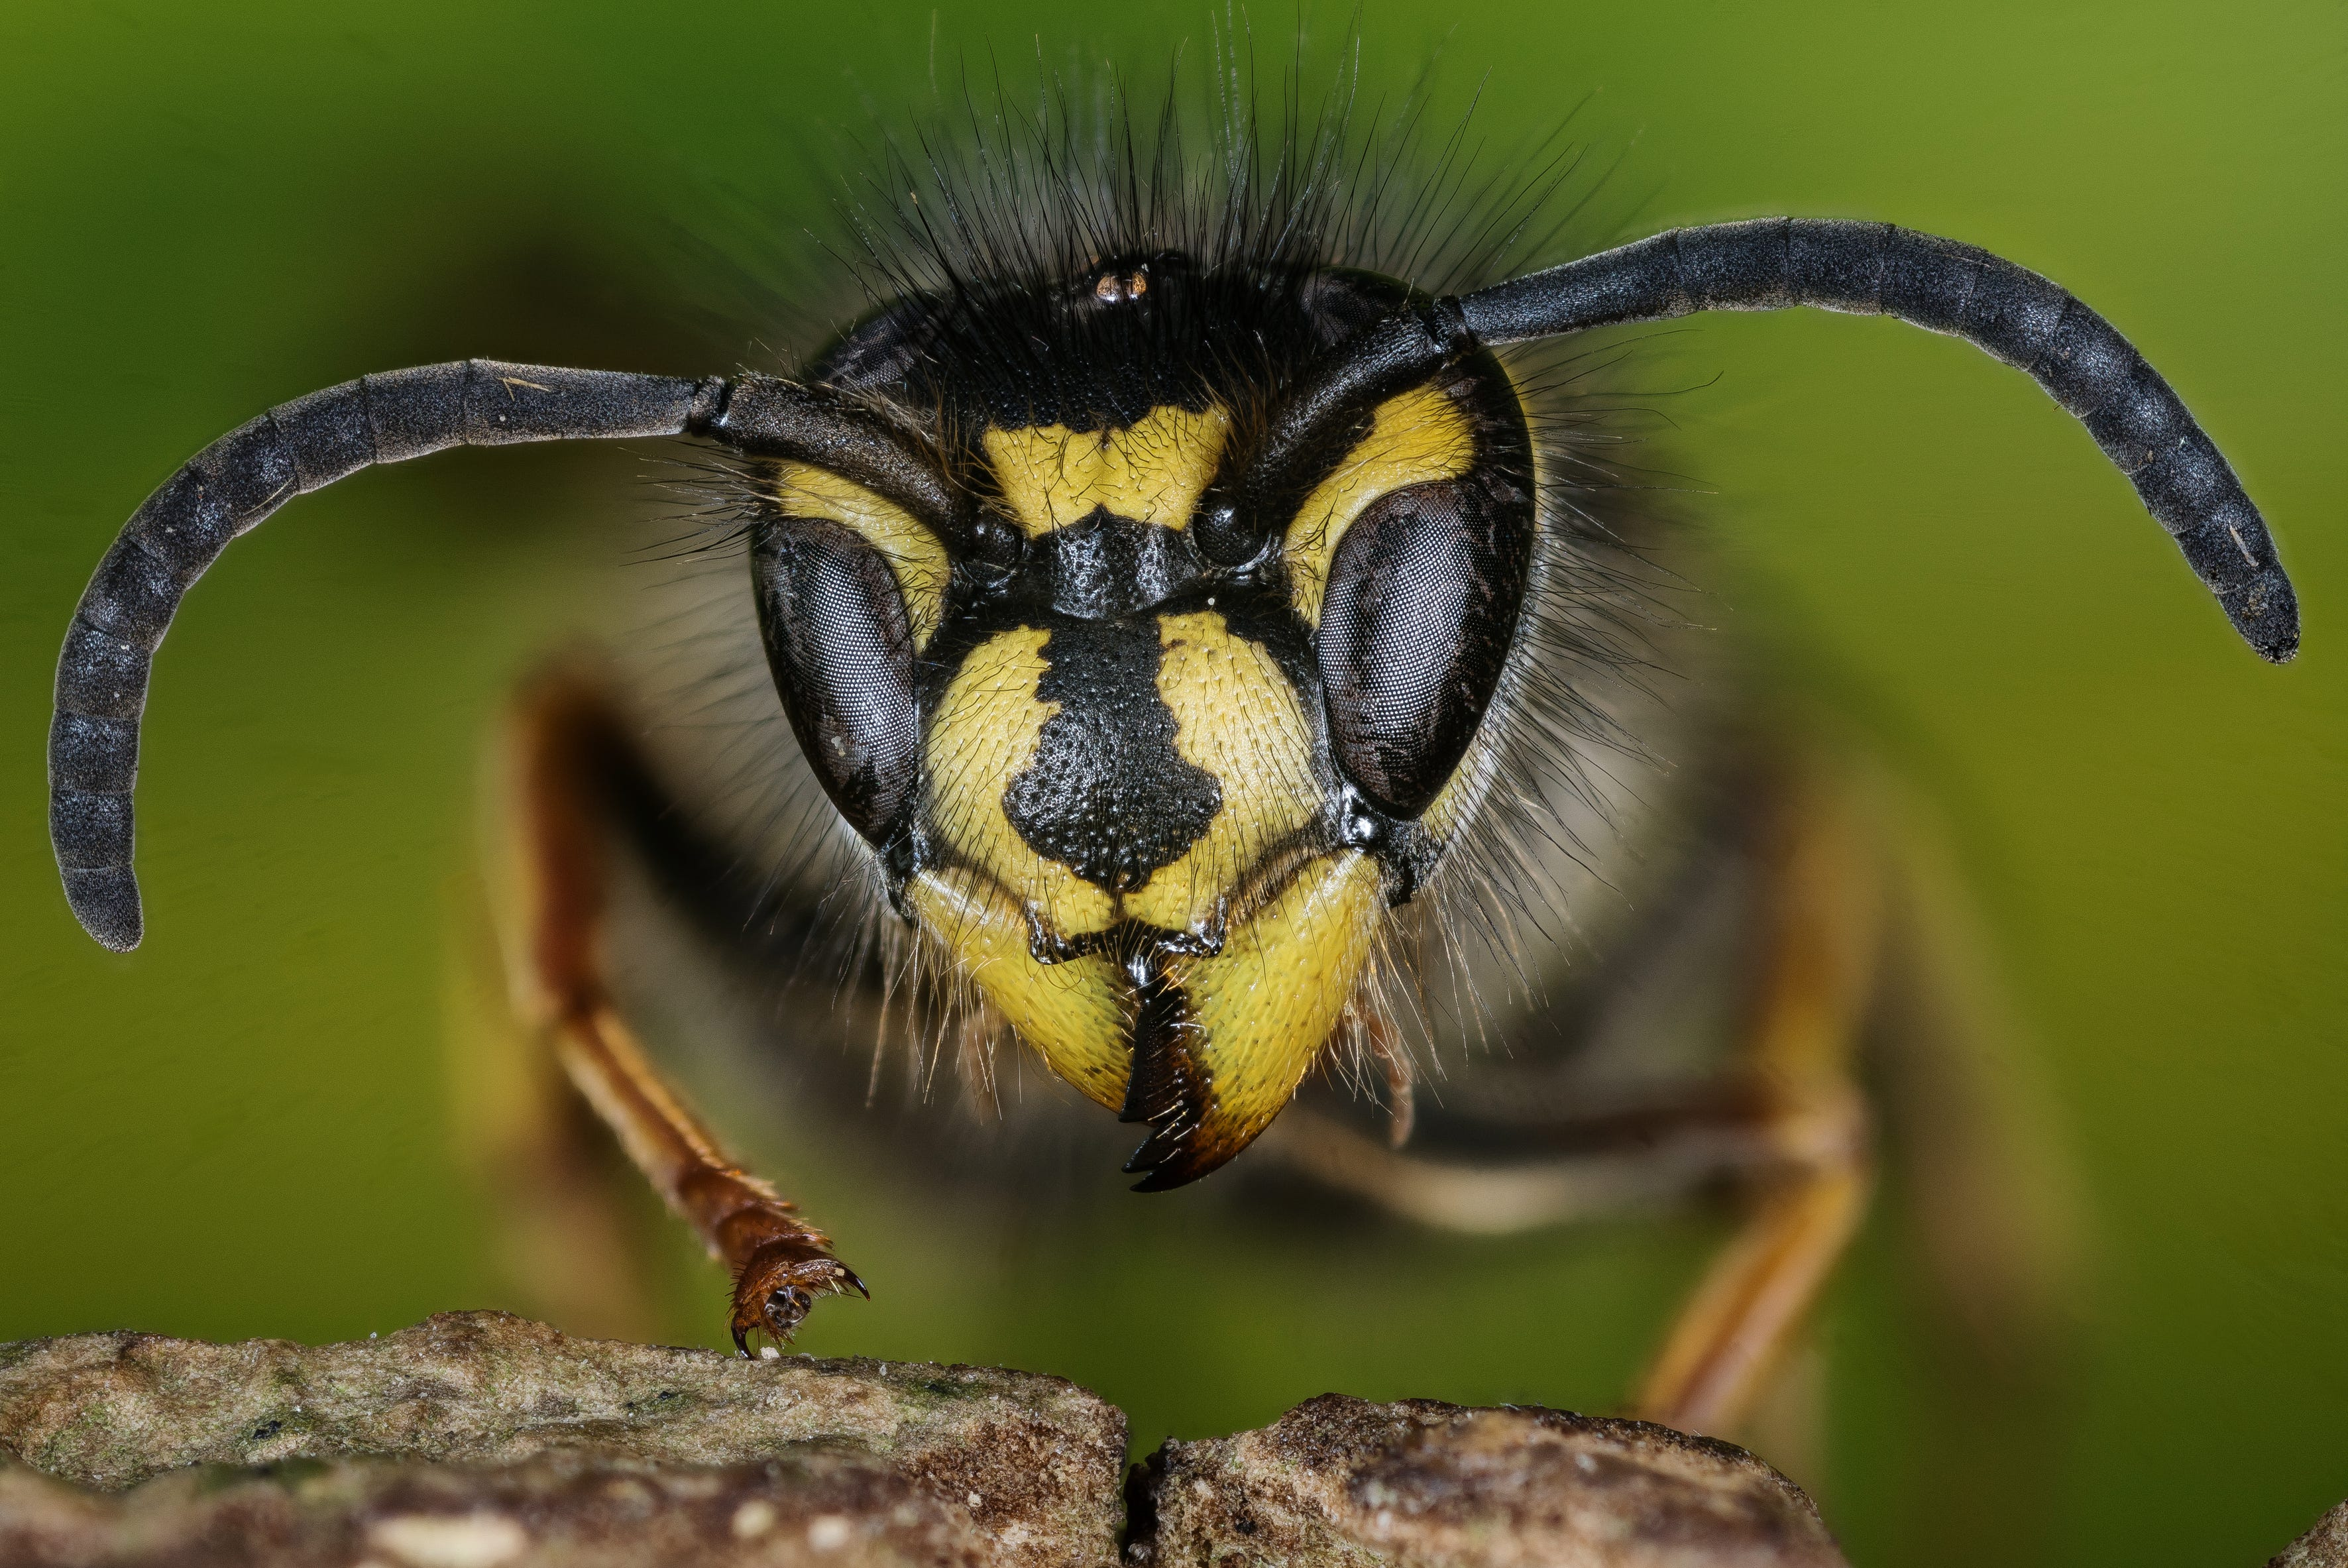 How to get rid of wasps, yellow jackets